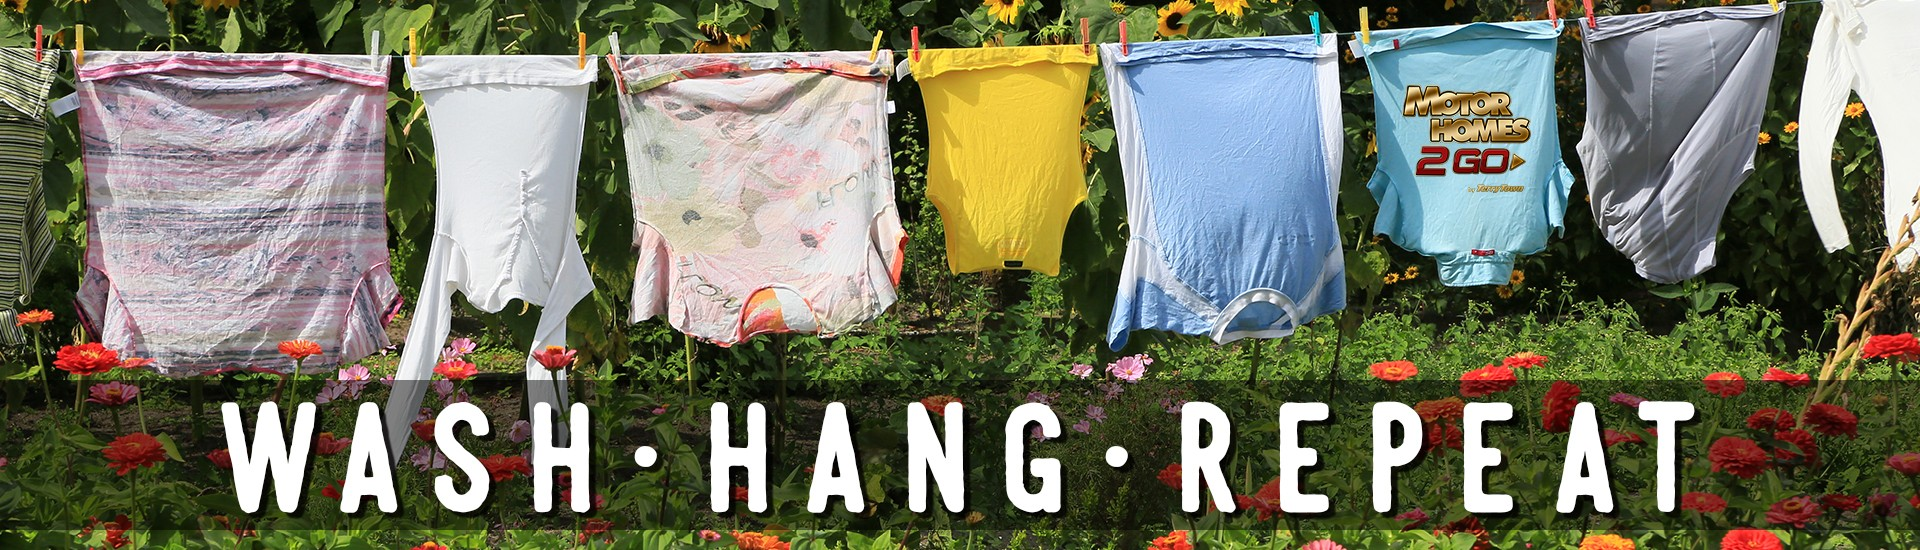 Wash. Hang. Repeat.